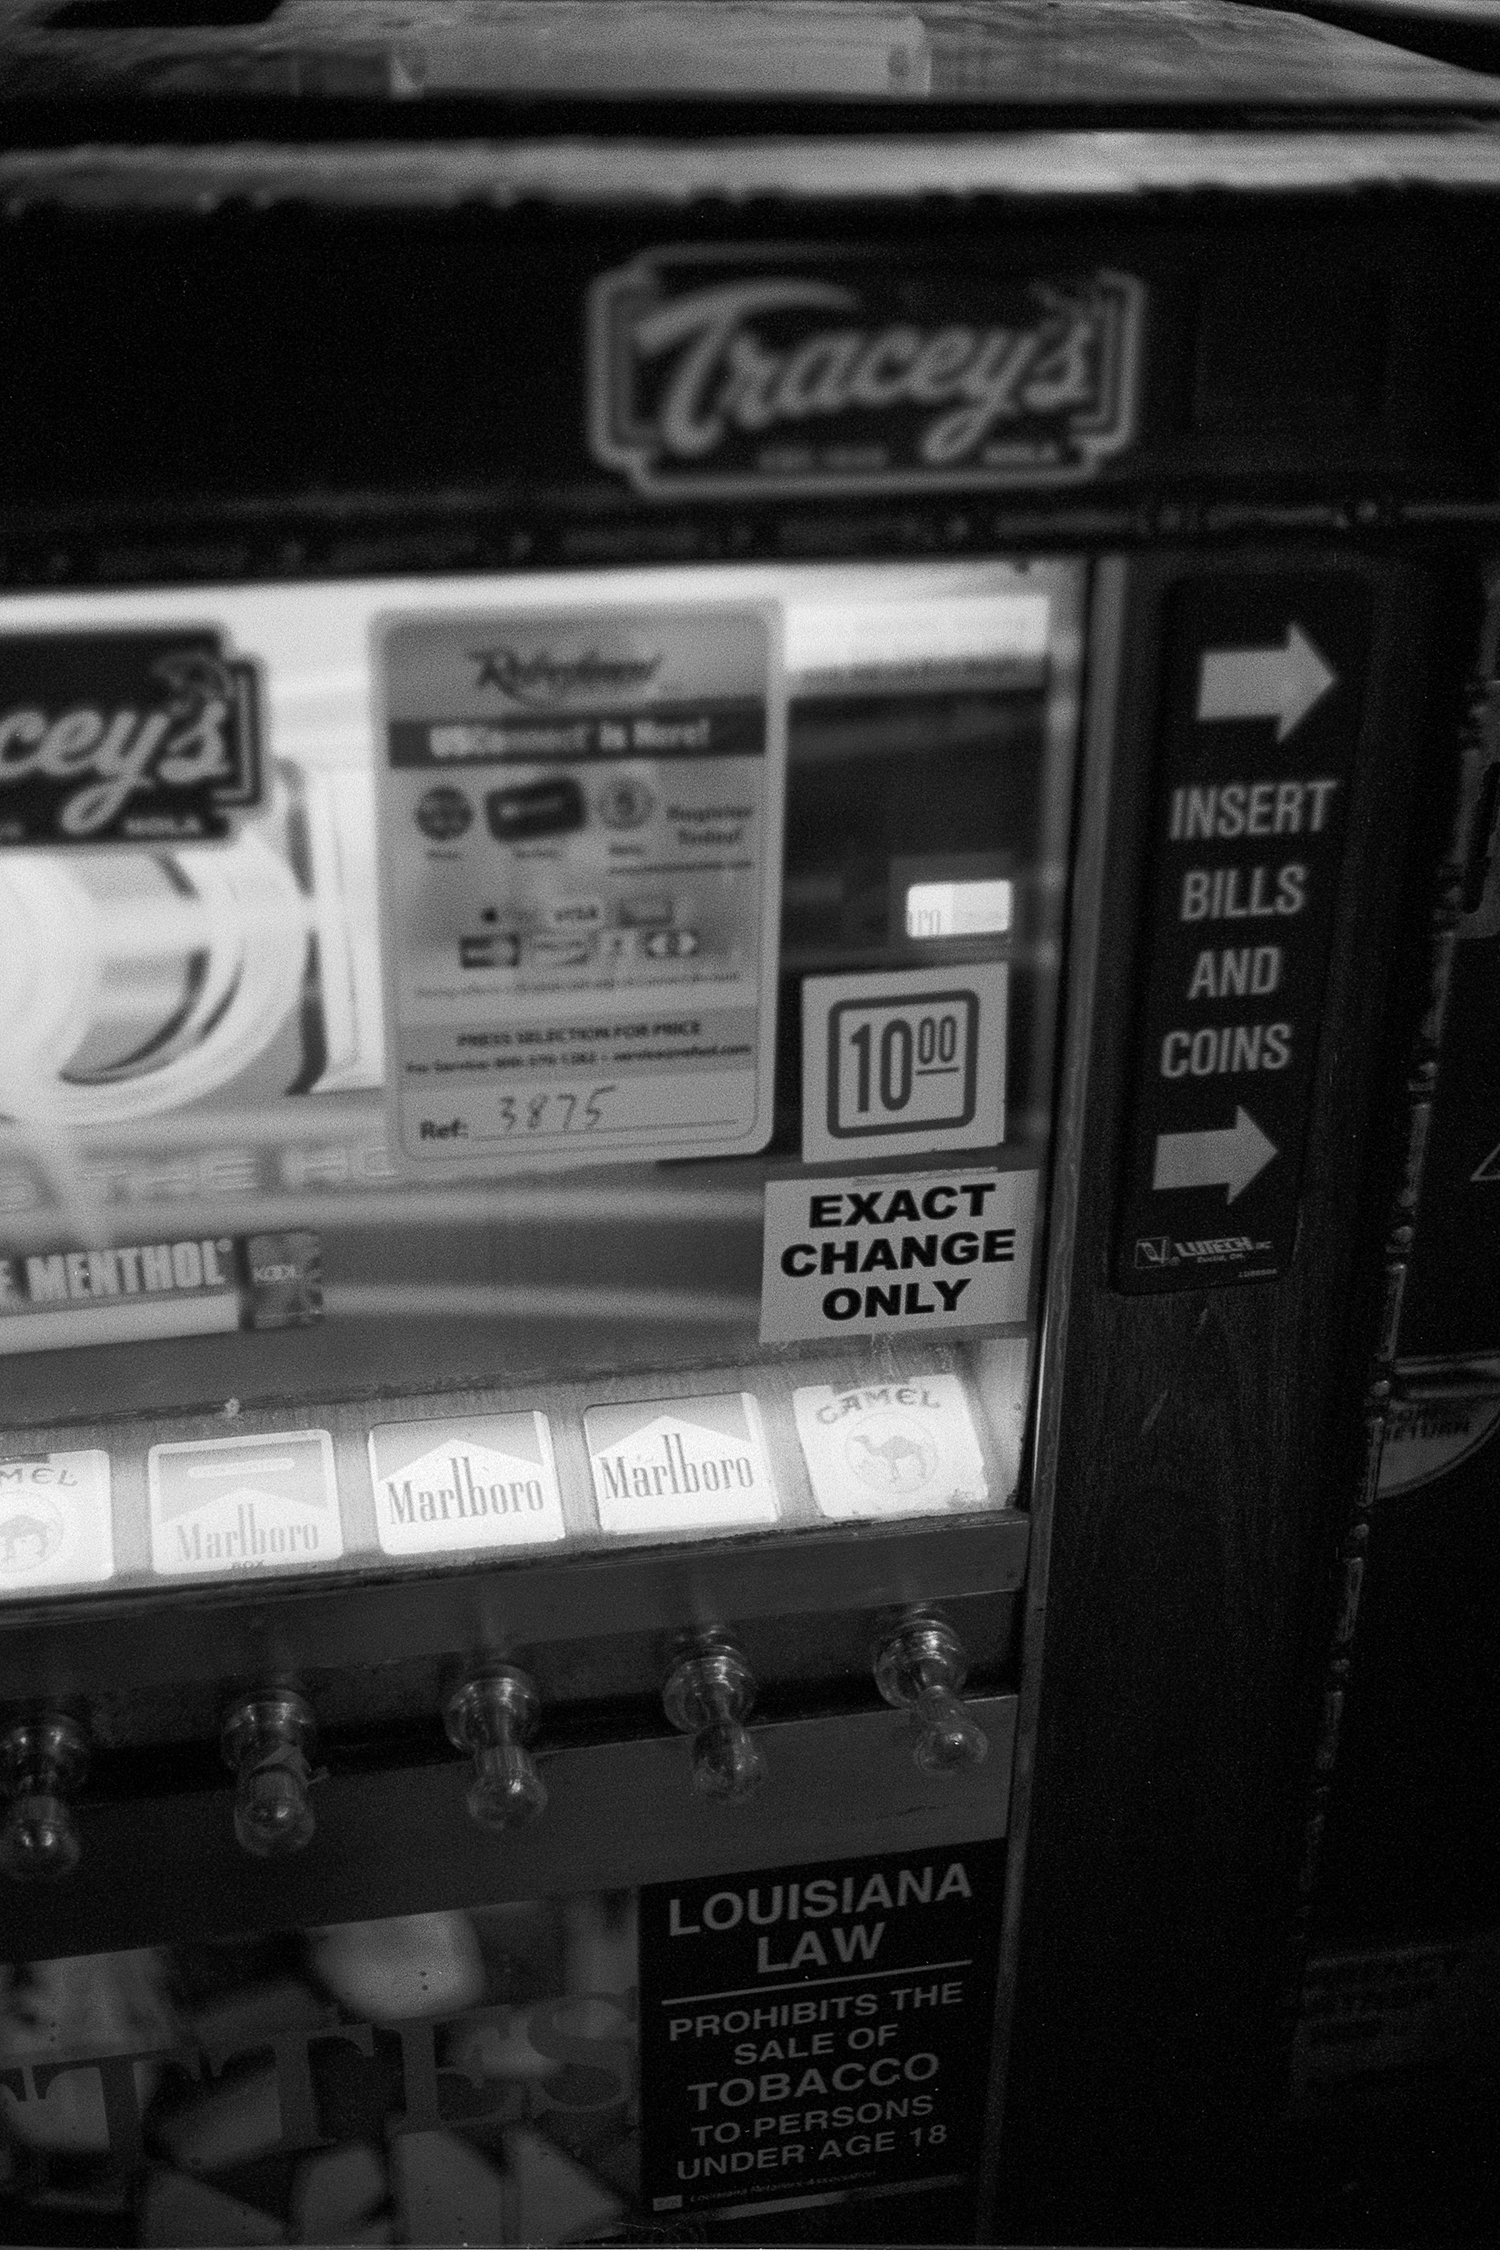 traceys-new-orleans-cigarette-machine.jpg